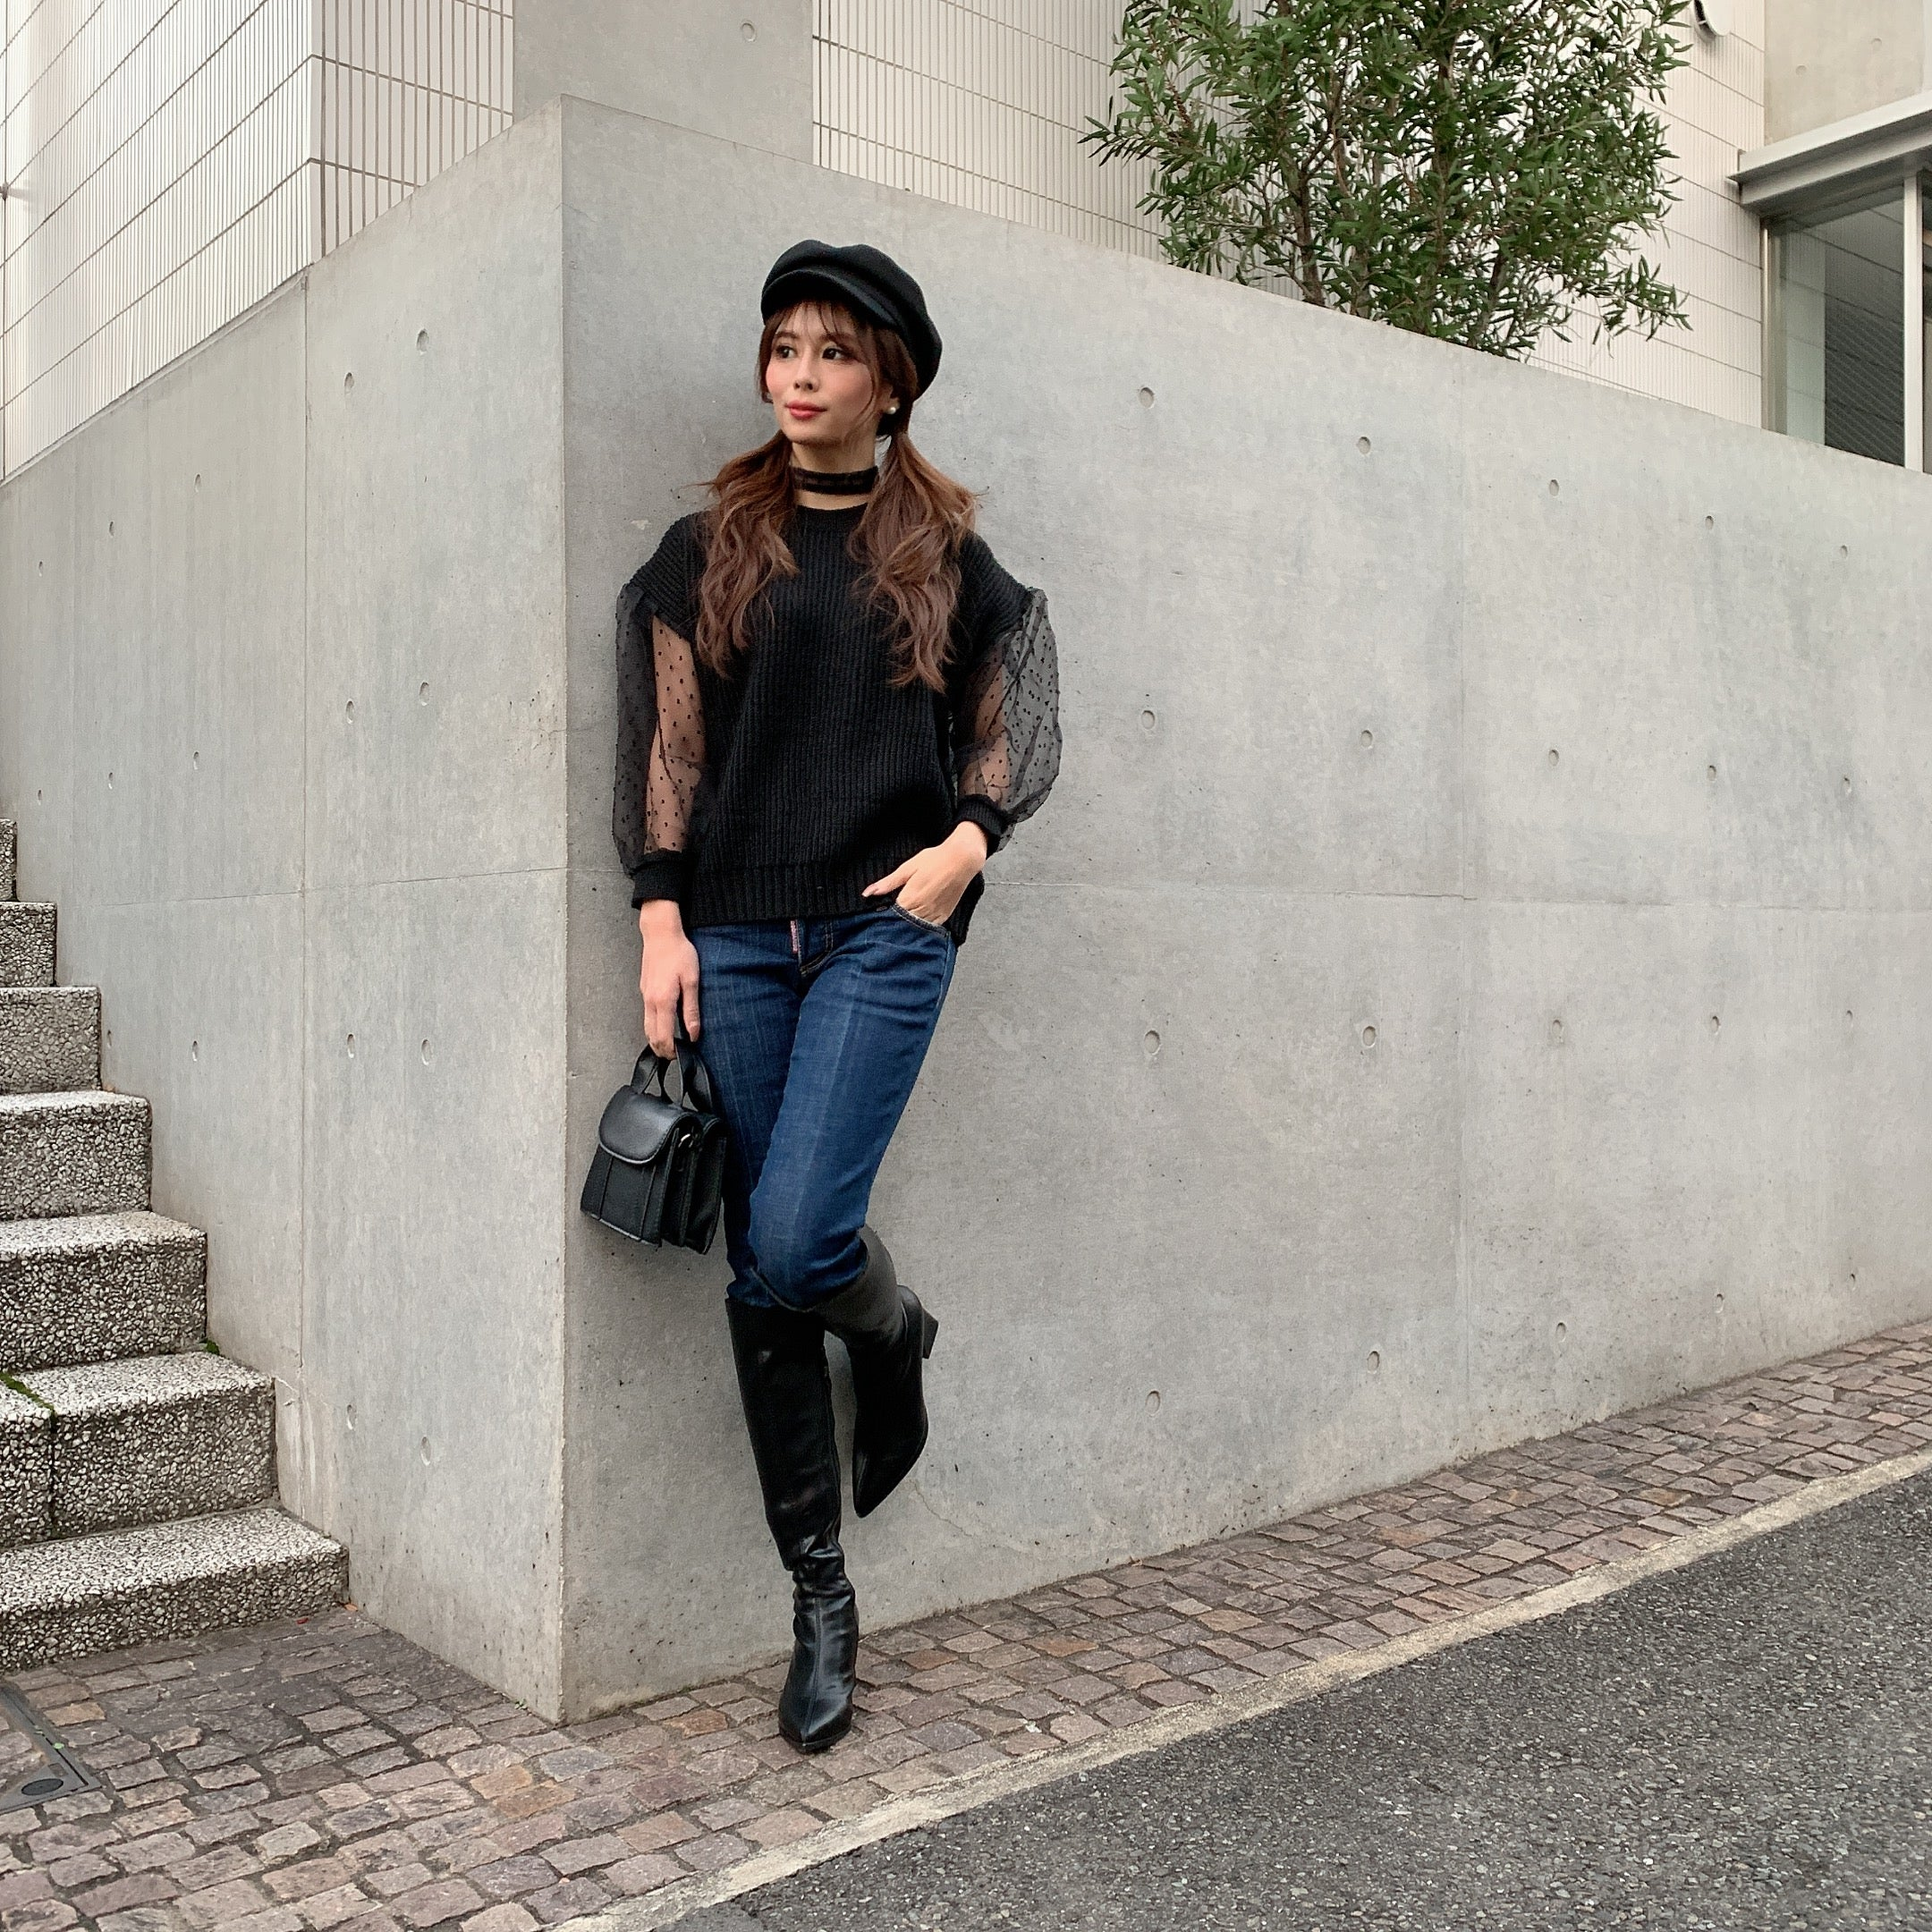 JM030 puff sleeve see-through dot knit - Just me(ジャスト・ミー)